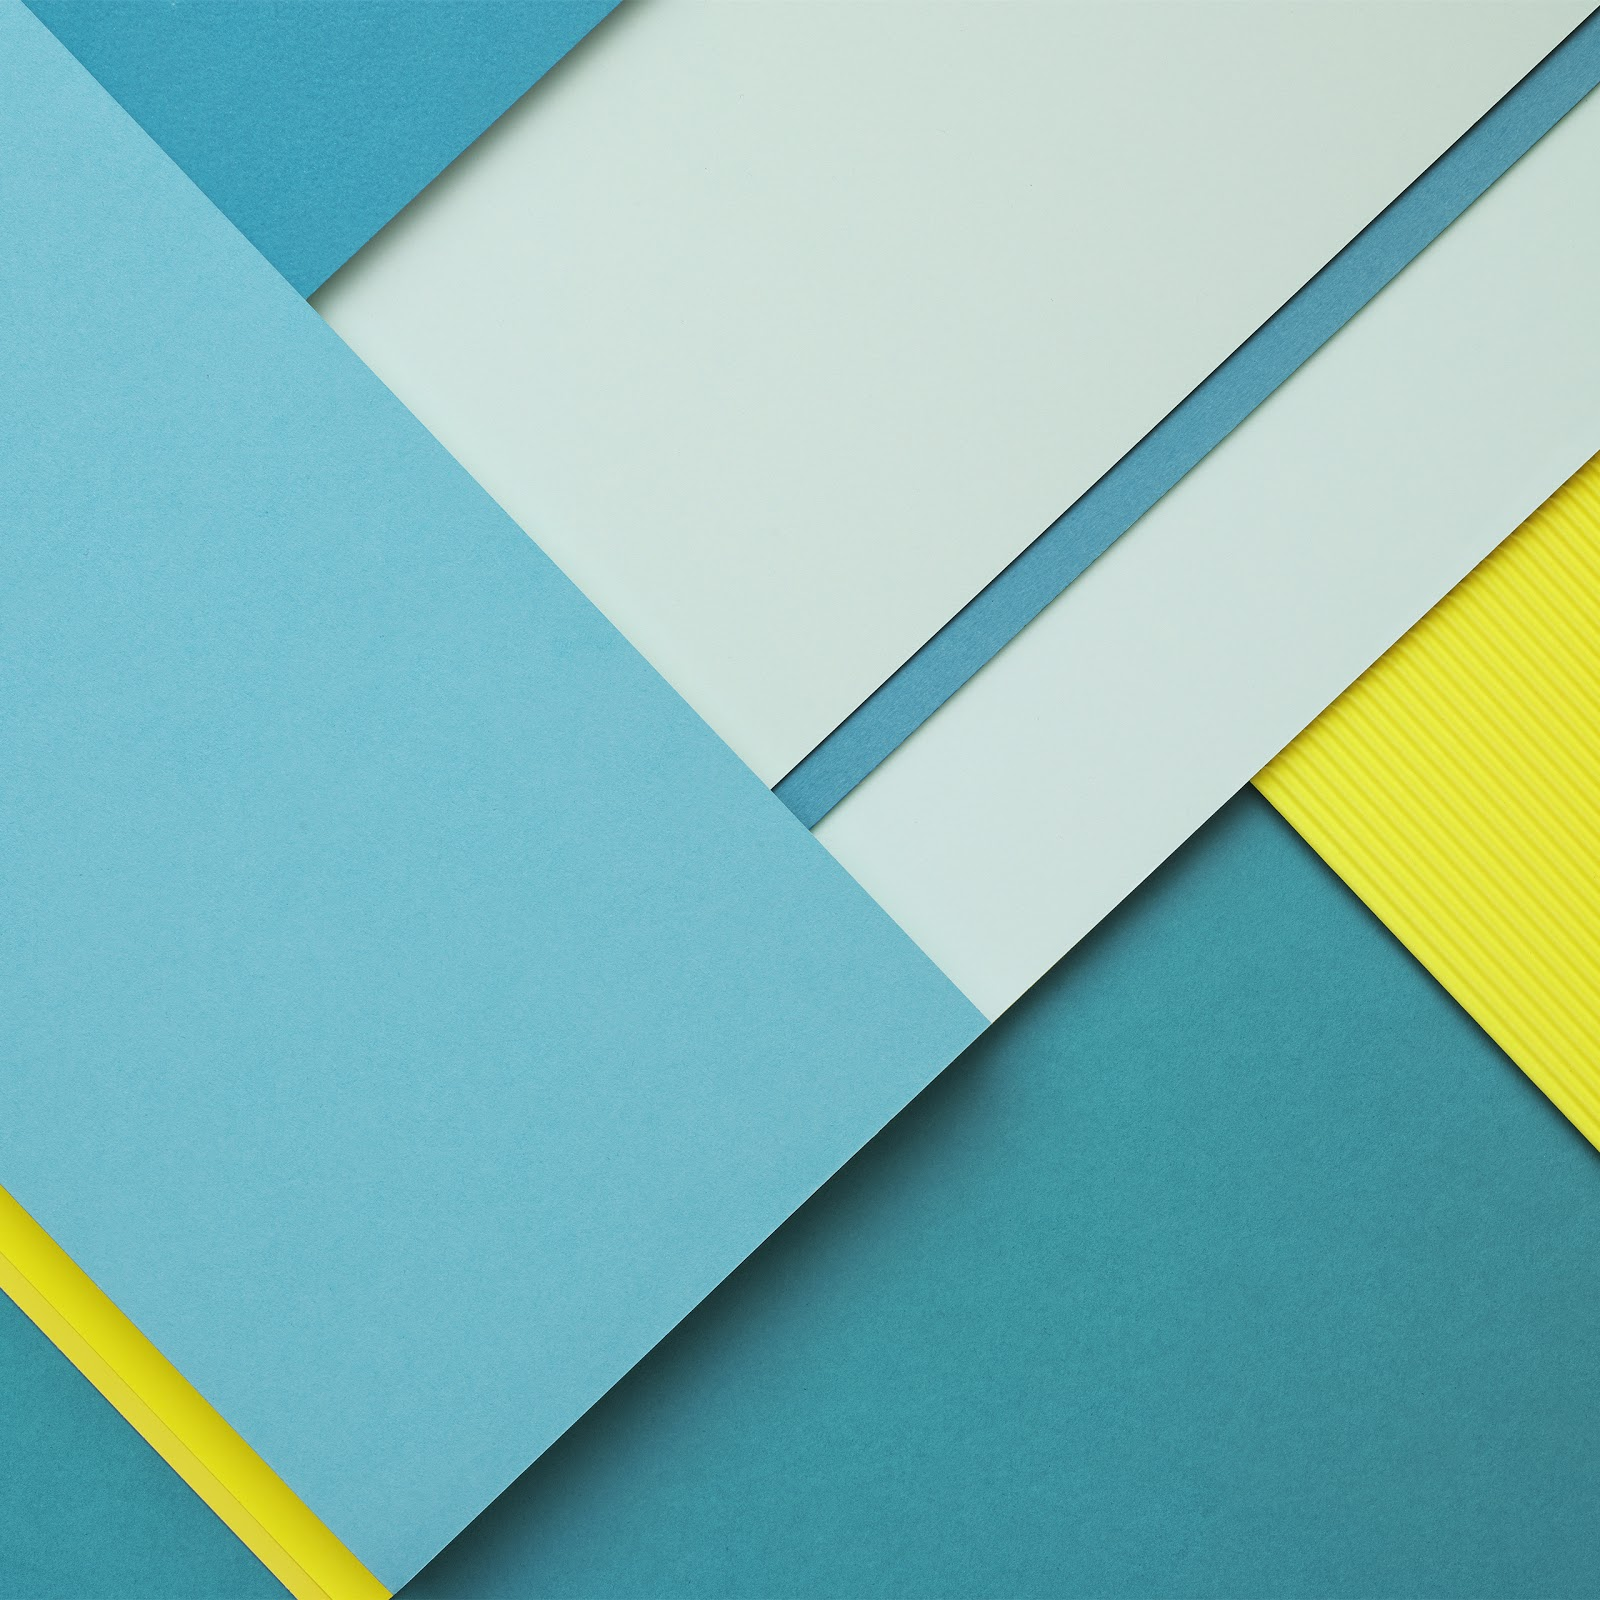 141 awesome material design wallpapers android